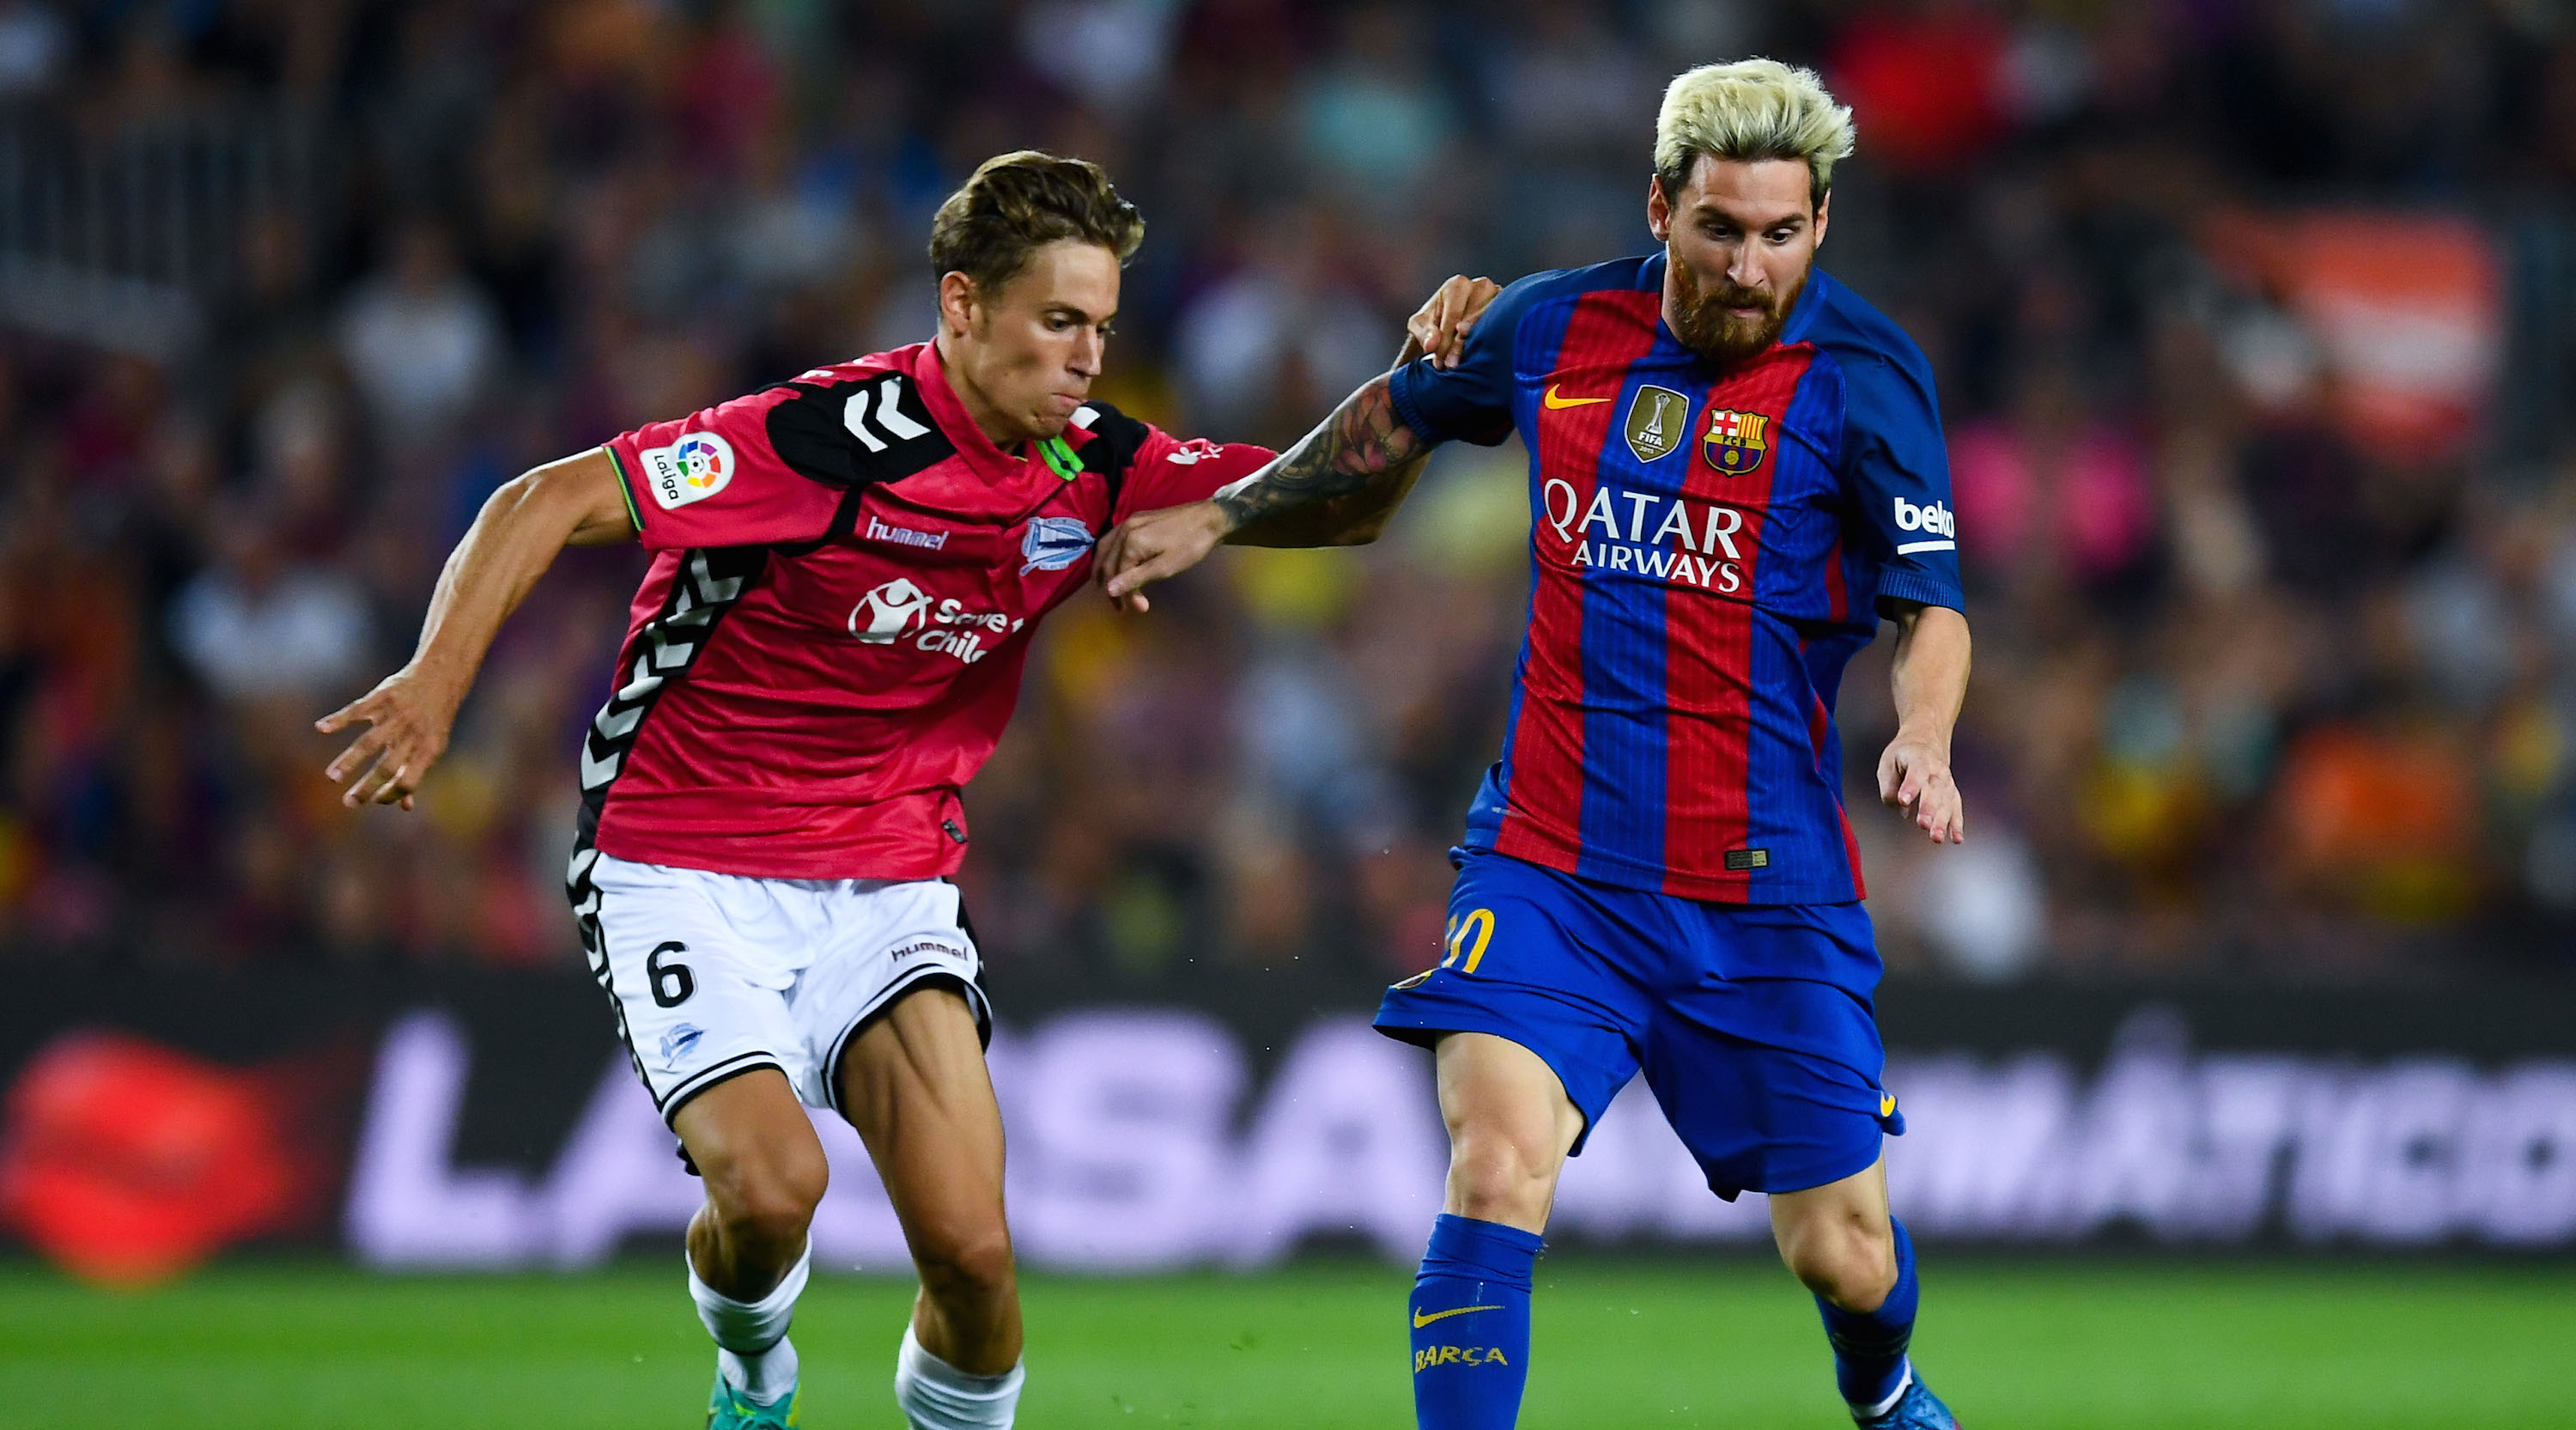 BARCELONA, SPAIN - SEPTEMBER 10: Lionel Messi of FC Barcelona competes for the ball with Marcos Llorente of Deportivo Alaves during the La Liga match between FC Barcelona and Deportivo Alaves at Camp Nou stadium on September 10, 2016 in Barcelona, Spain. (Photo by David Ramos/Getty Images)